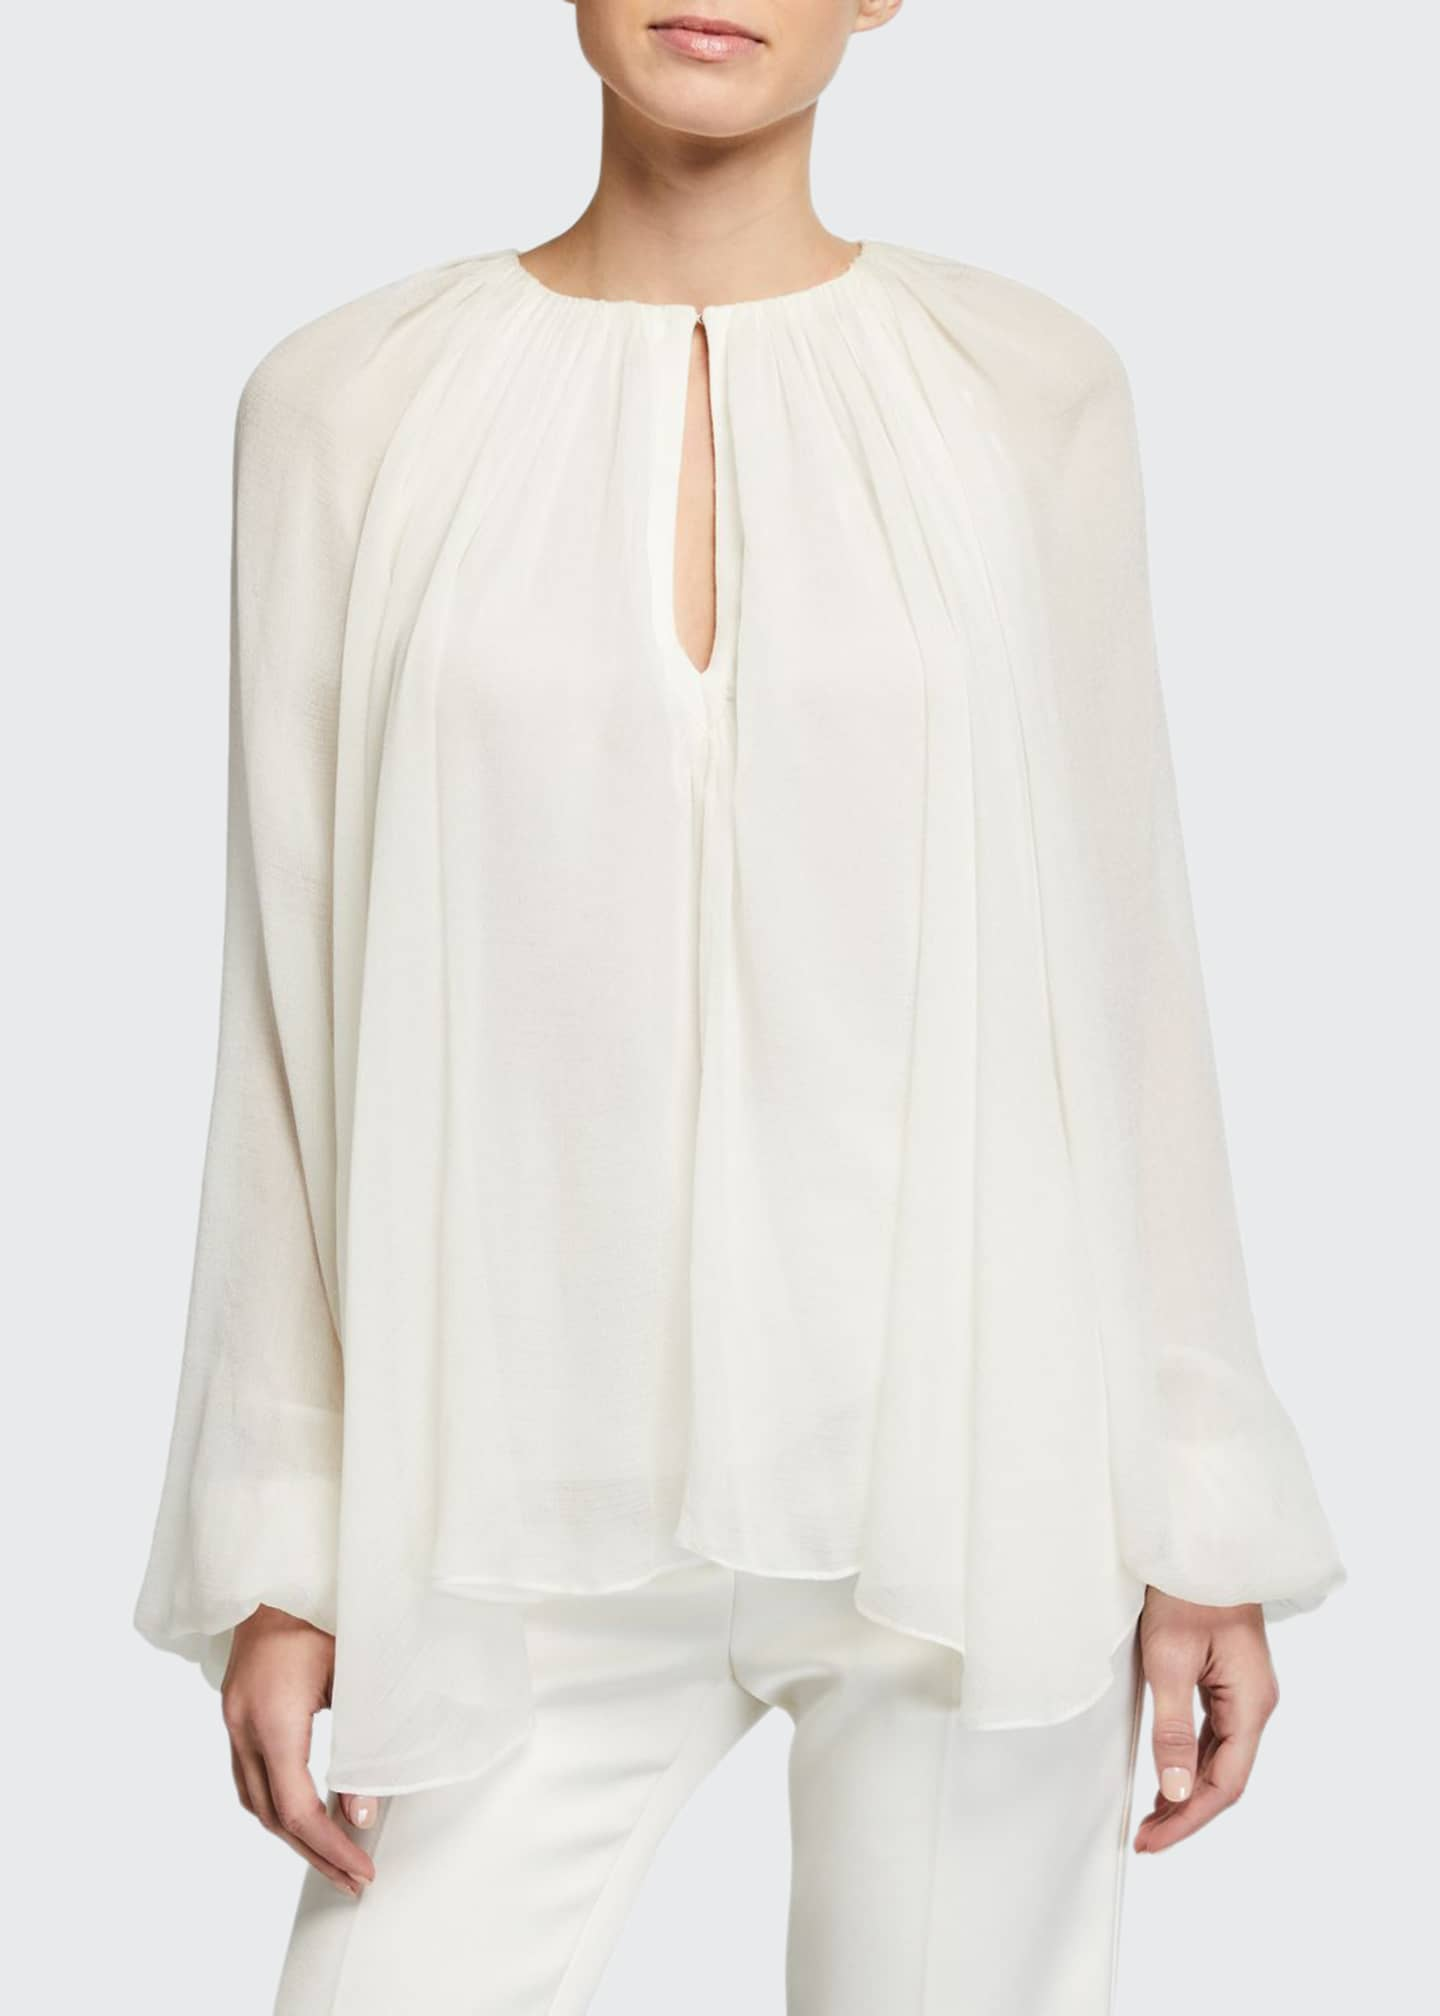 3.1 Phillip Lim Long-Sleeve Silk Keyhole Blouse